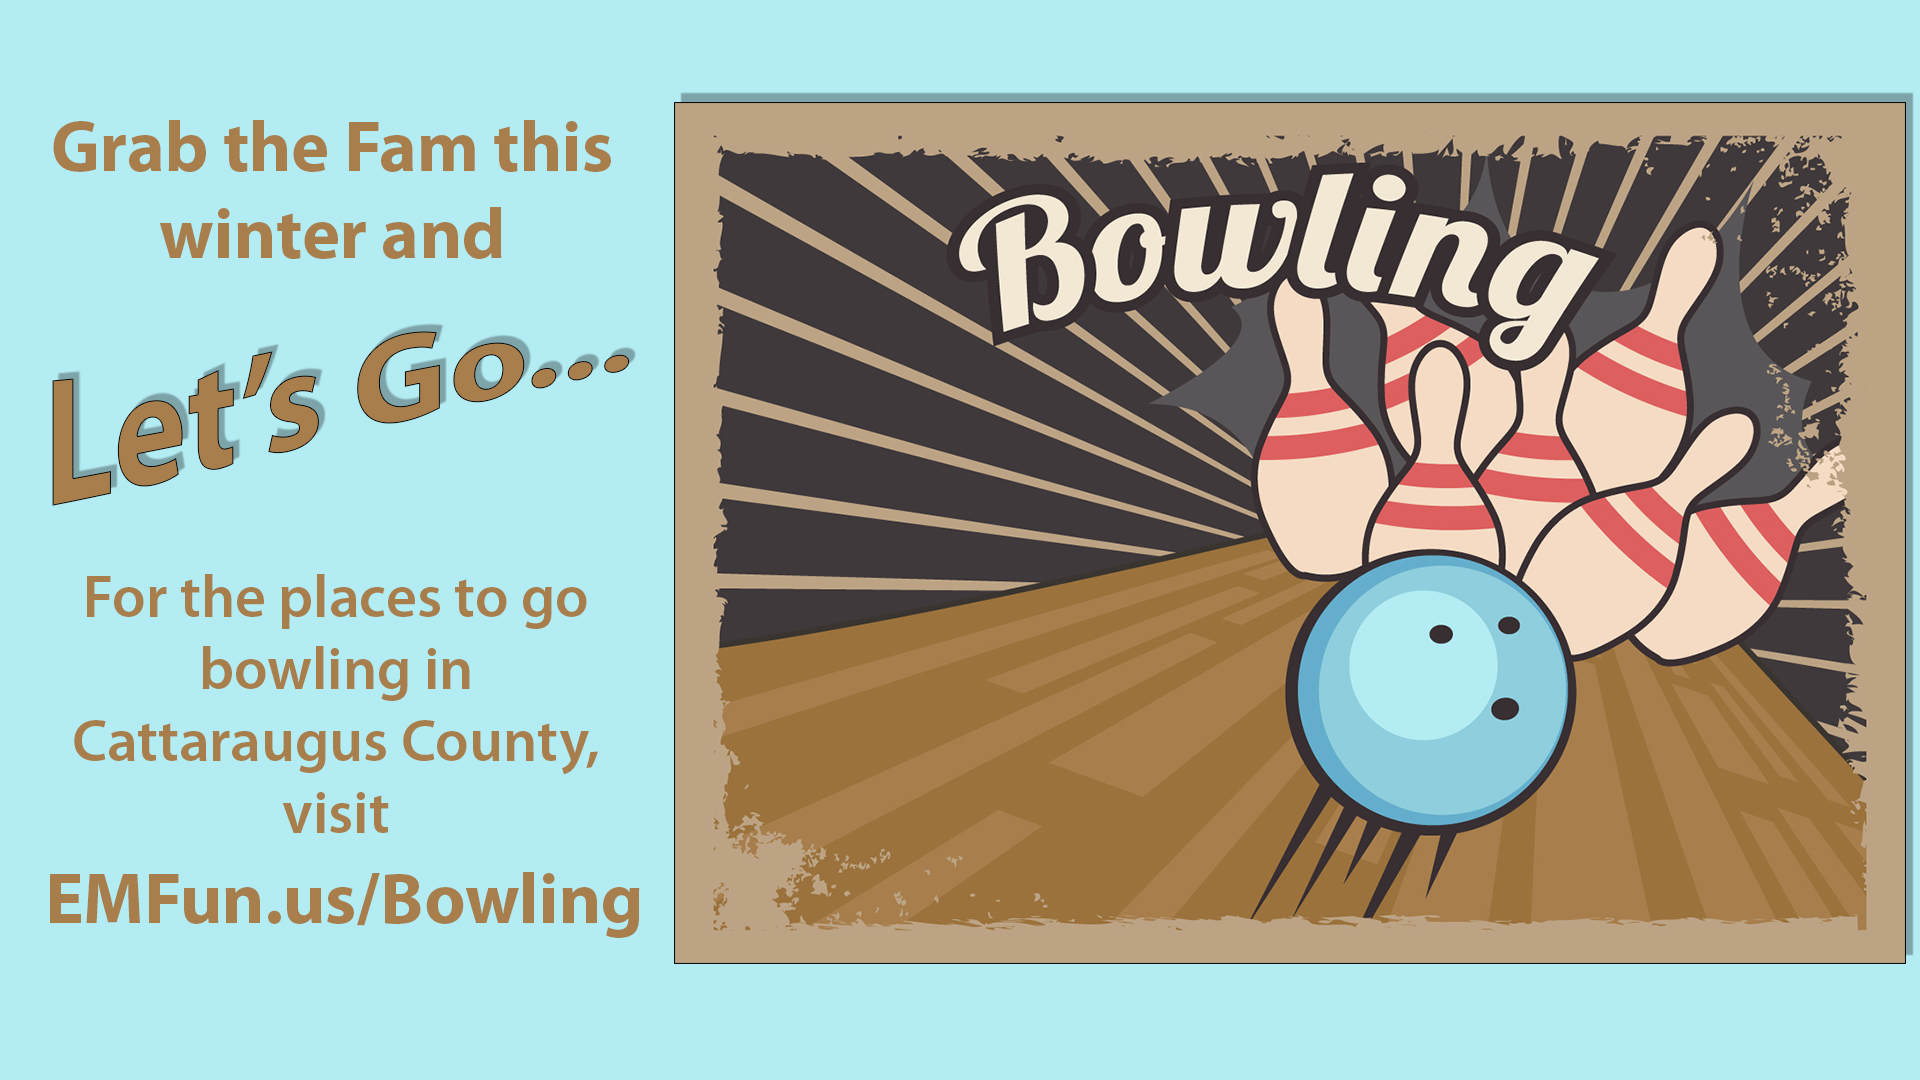 Go Bowling in Cattaraugus County